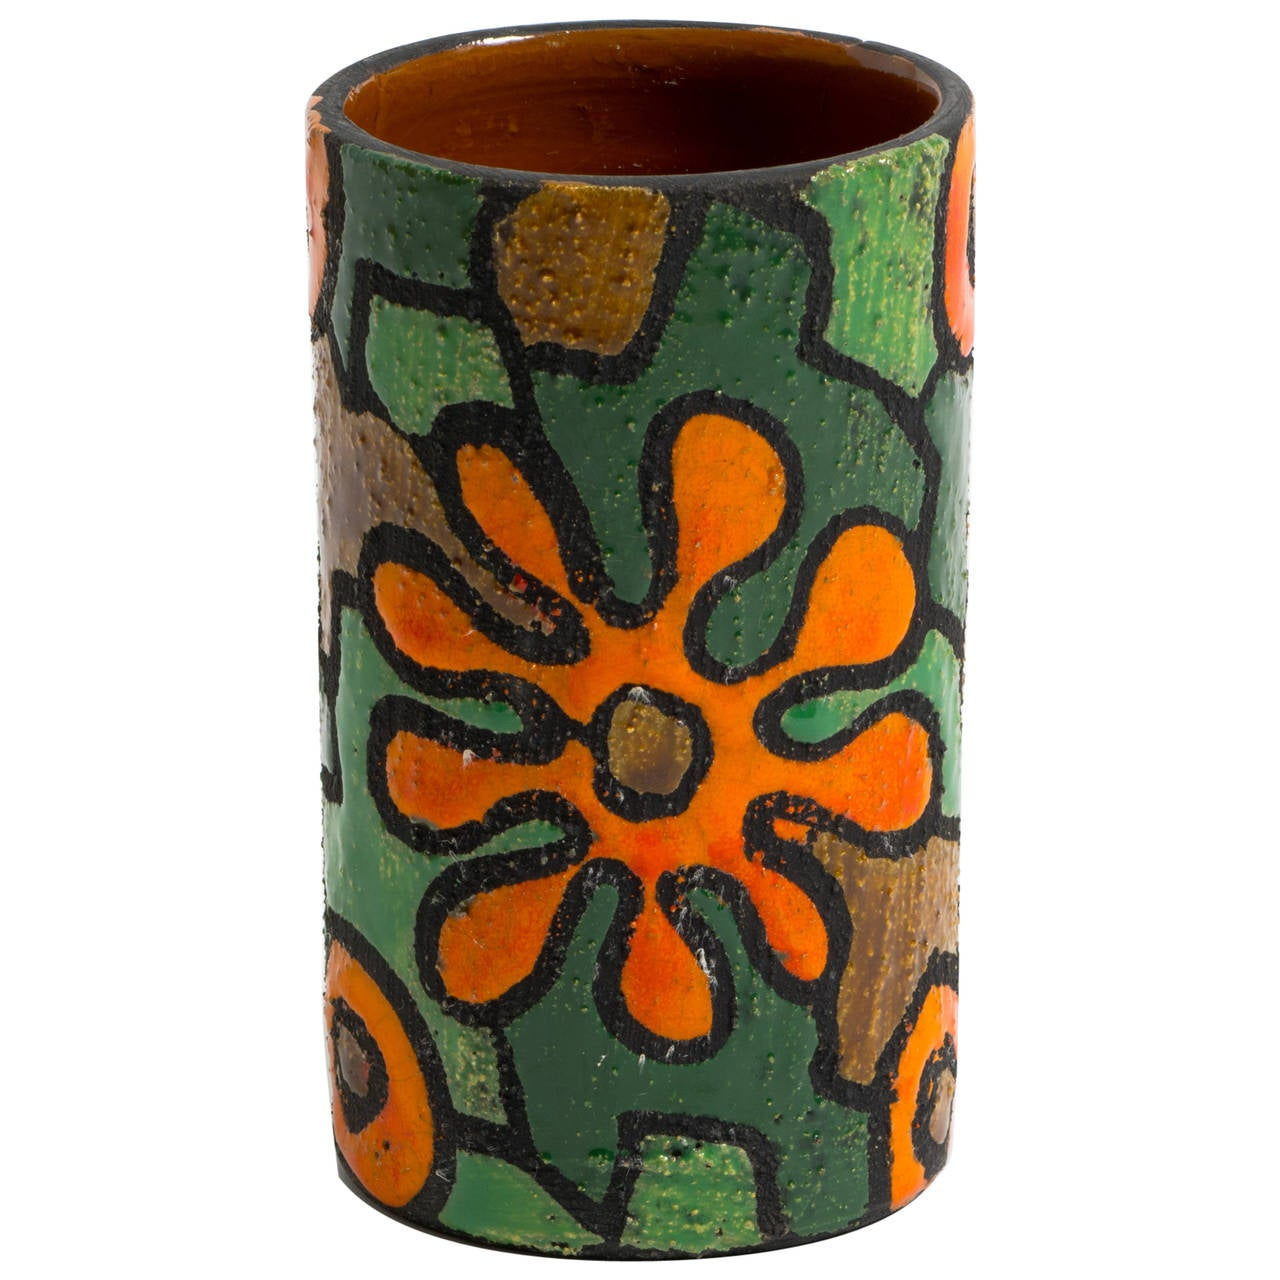 Italian ceramic vase by alvino bagni for raymor at 1stdibs italian ceramic vase by alvino bagni for raymor for sale reviewsmspy